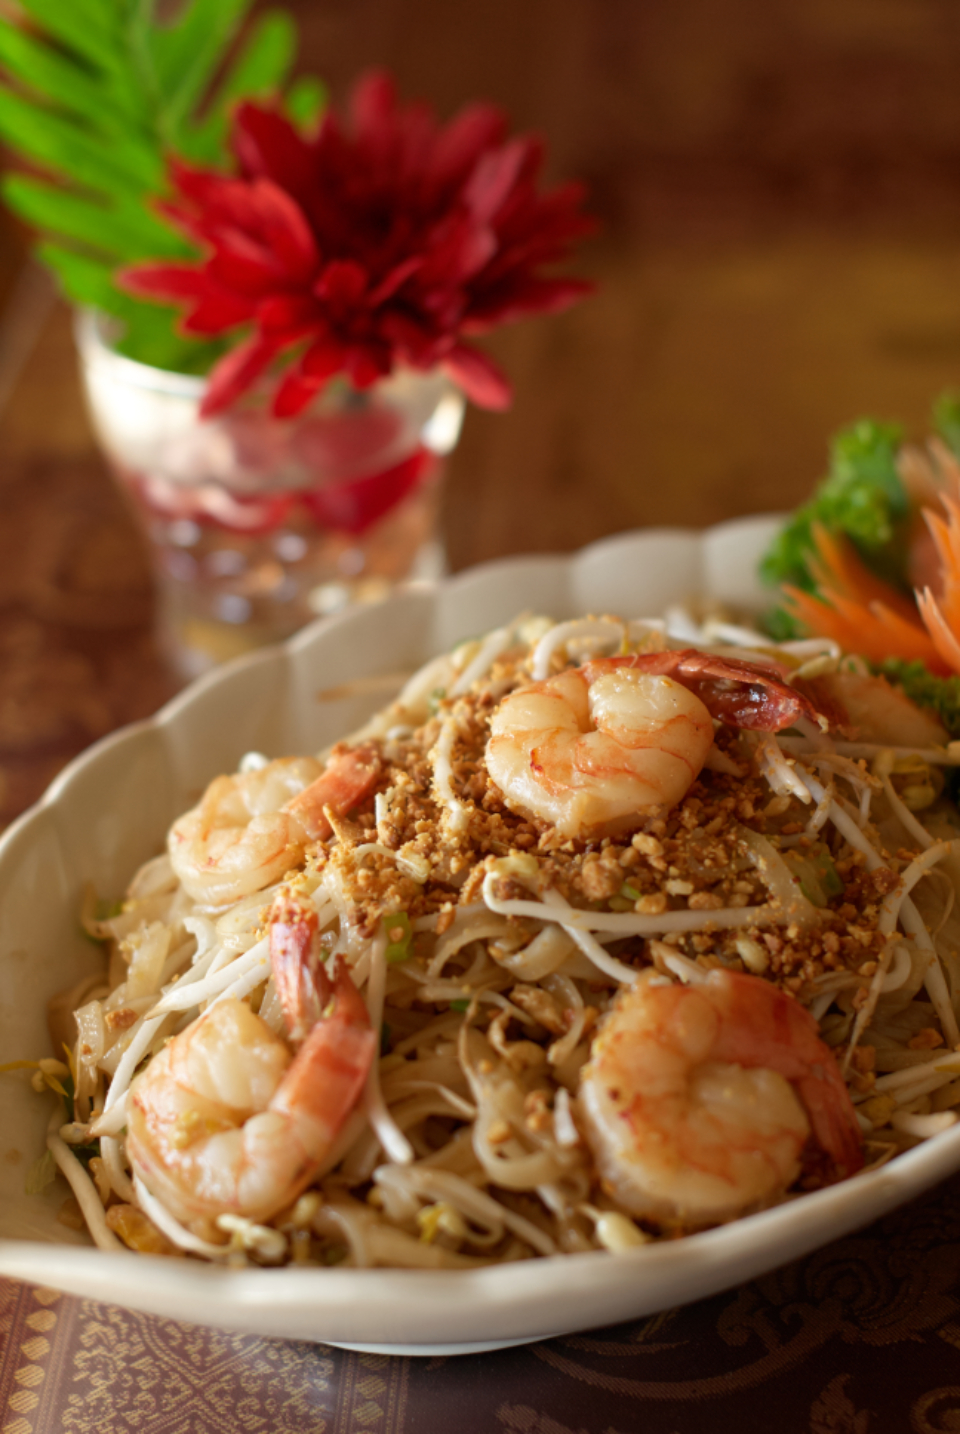 noodles asian cooking dish food shrimp oriental plate bowl meal restaurant pad thai dinner